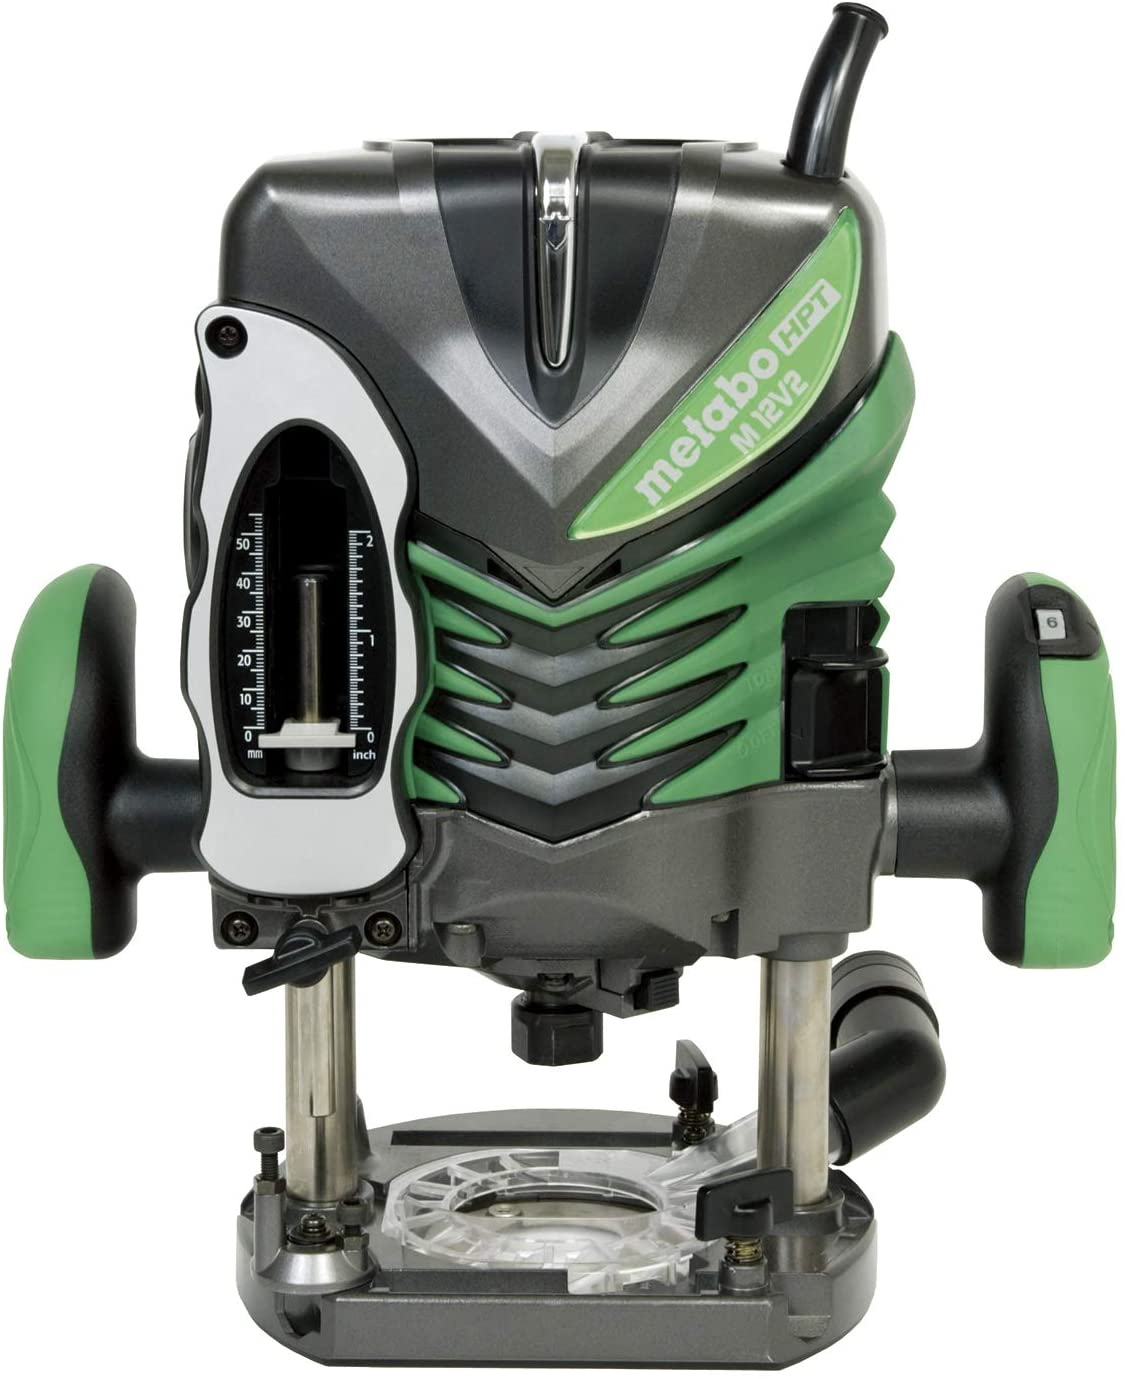 Metabo HPT M12V2 Variable Speed Plunge Router